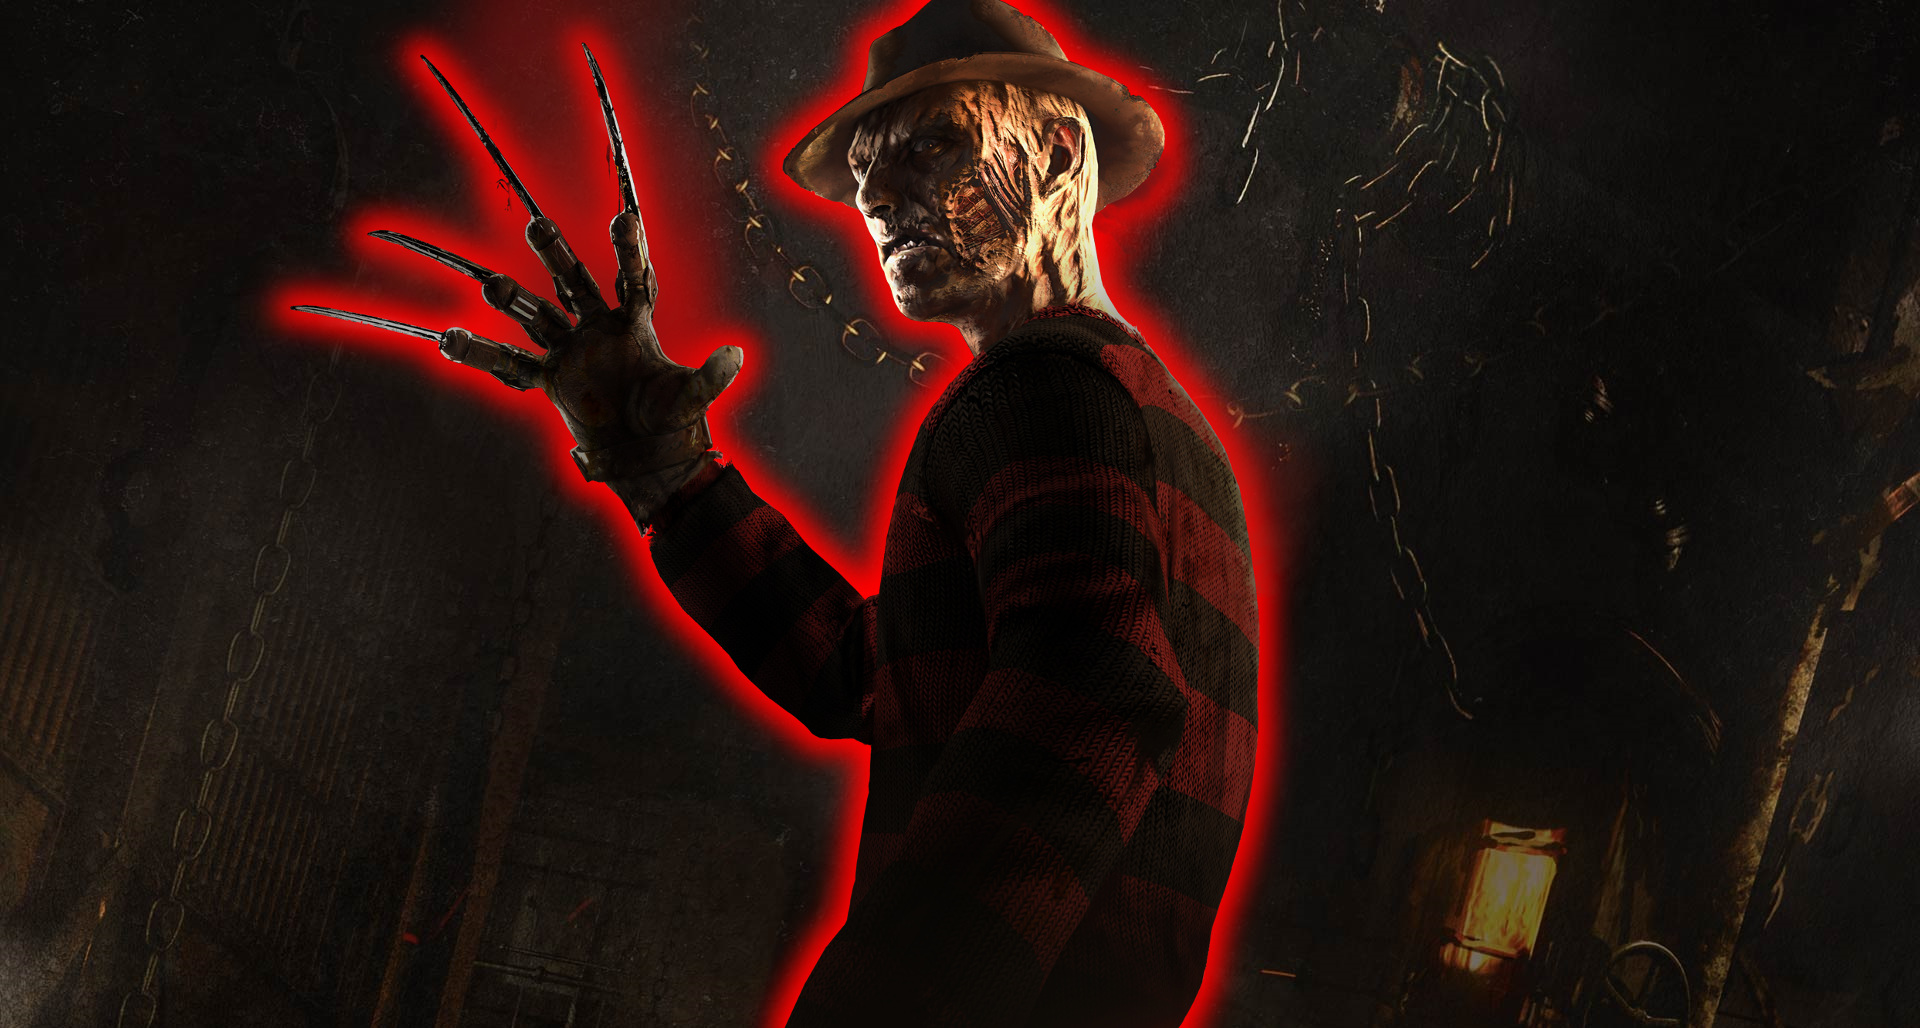 Dead by Daylight Freddy